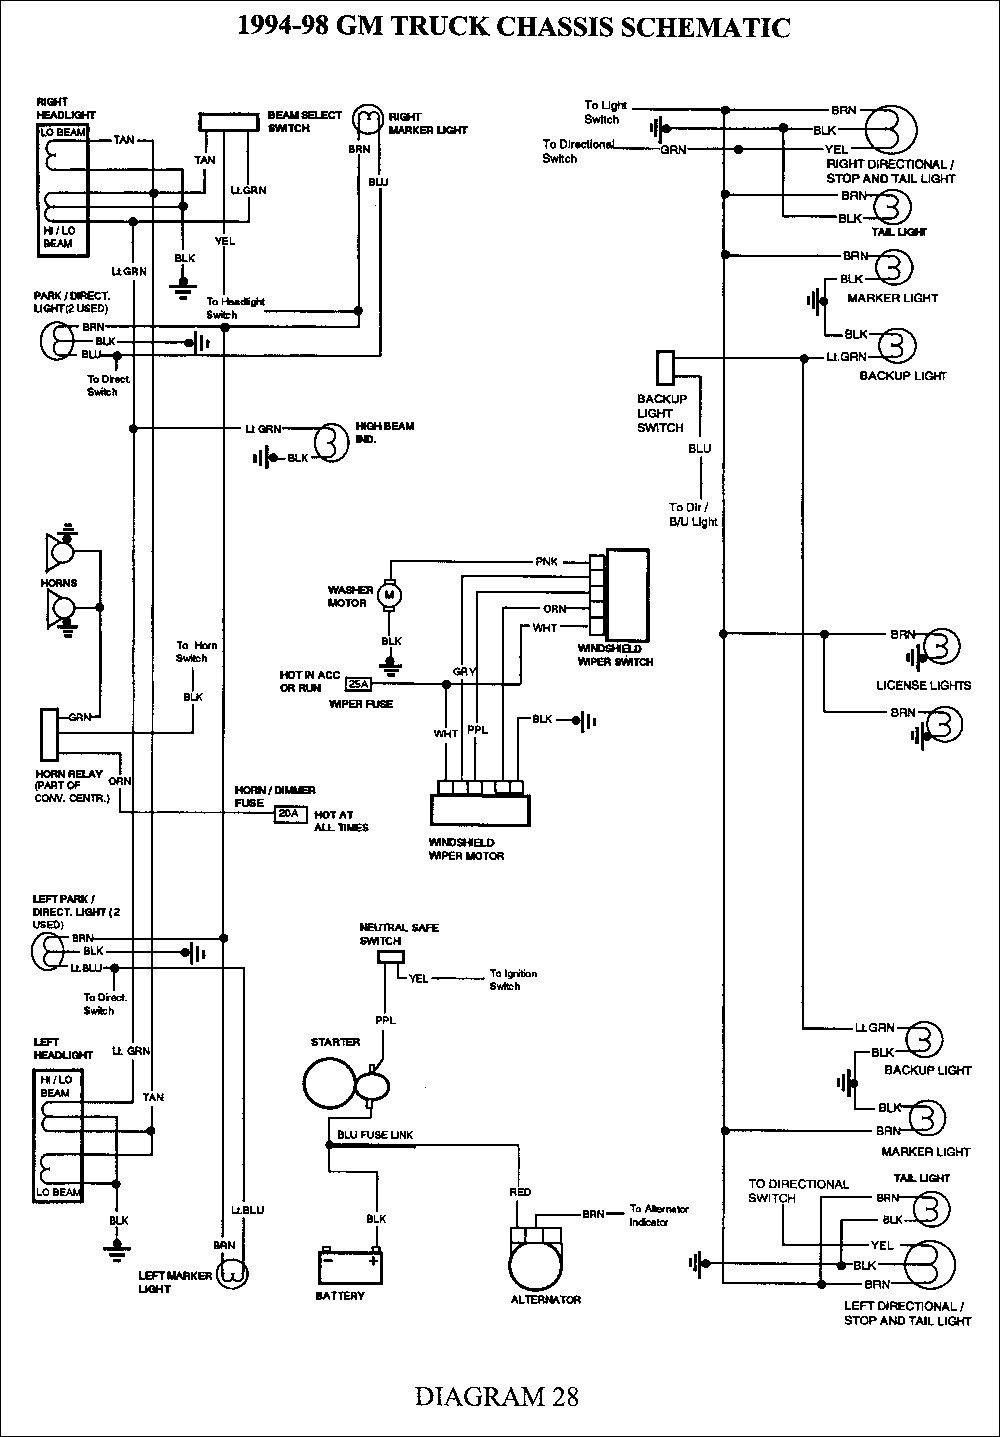 hight resolution of 2008 gmc truck wiring diagrams free wiring diagrams 2014 gmc savana wiring harness diagram free download